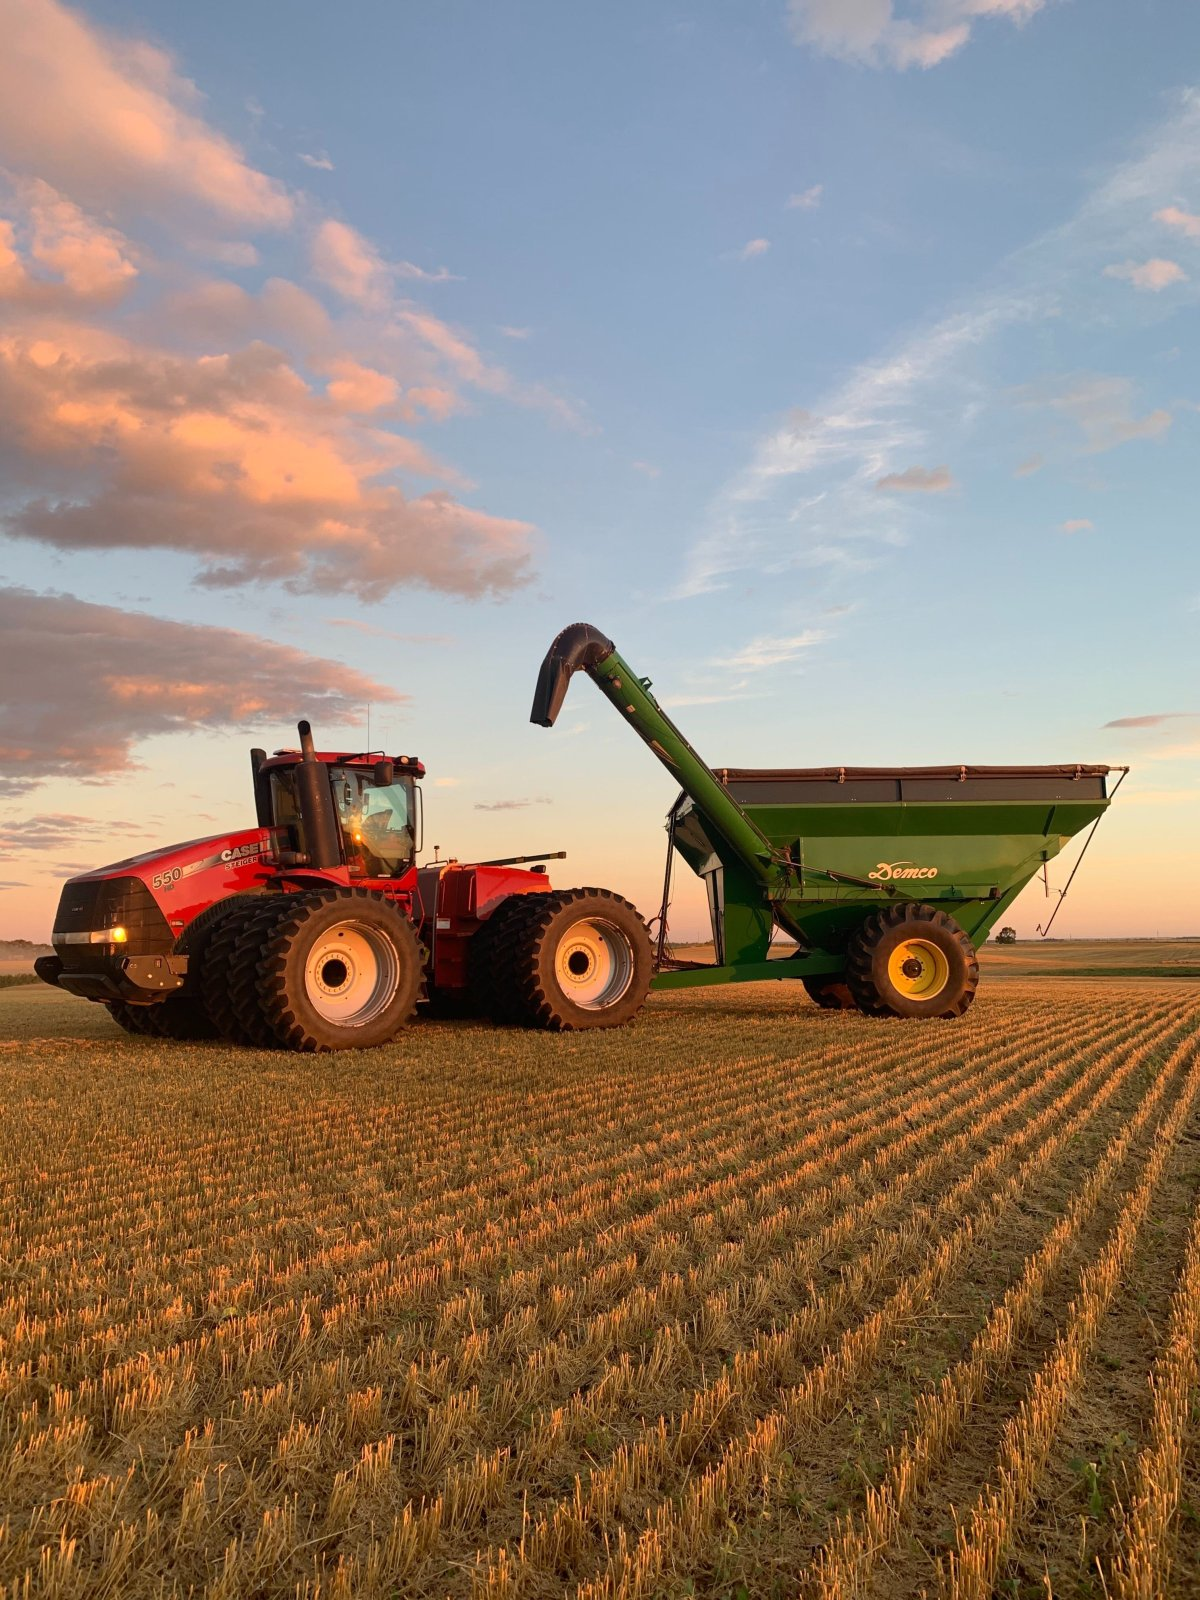 This week could be one of the last we see equipment like this in Manitoba's fields, according to Dane Froese of Manitoba Agriculture.